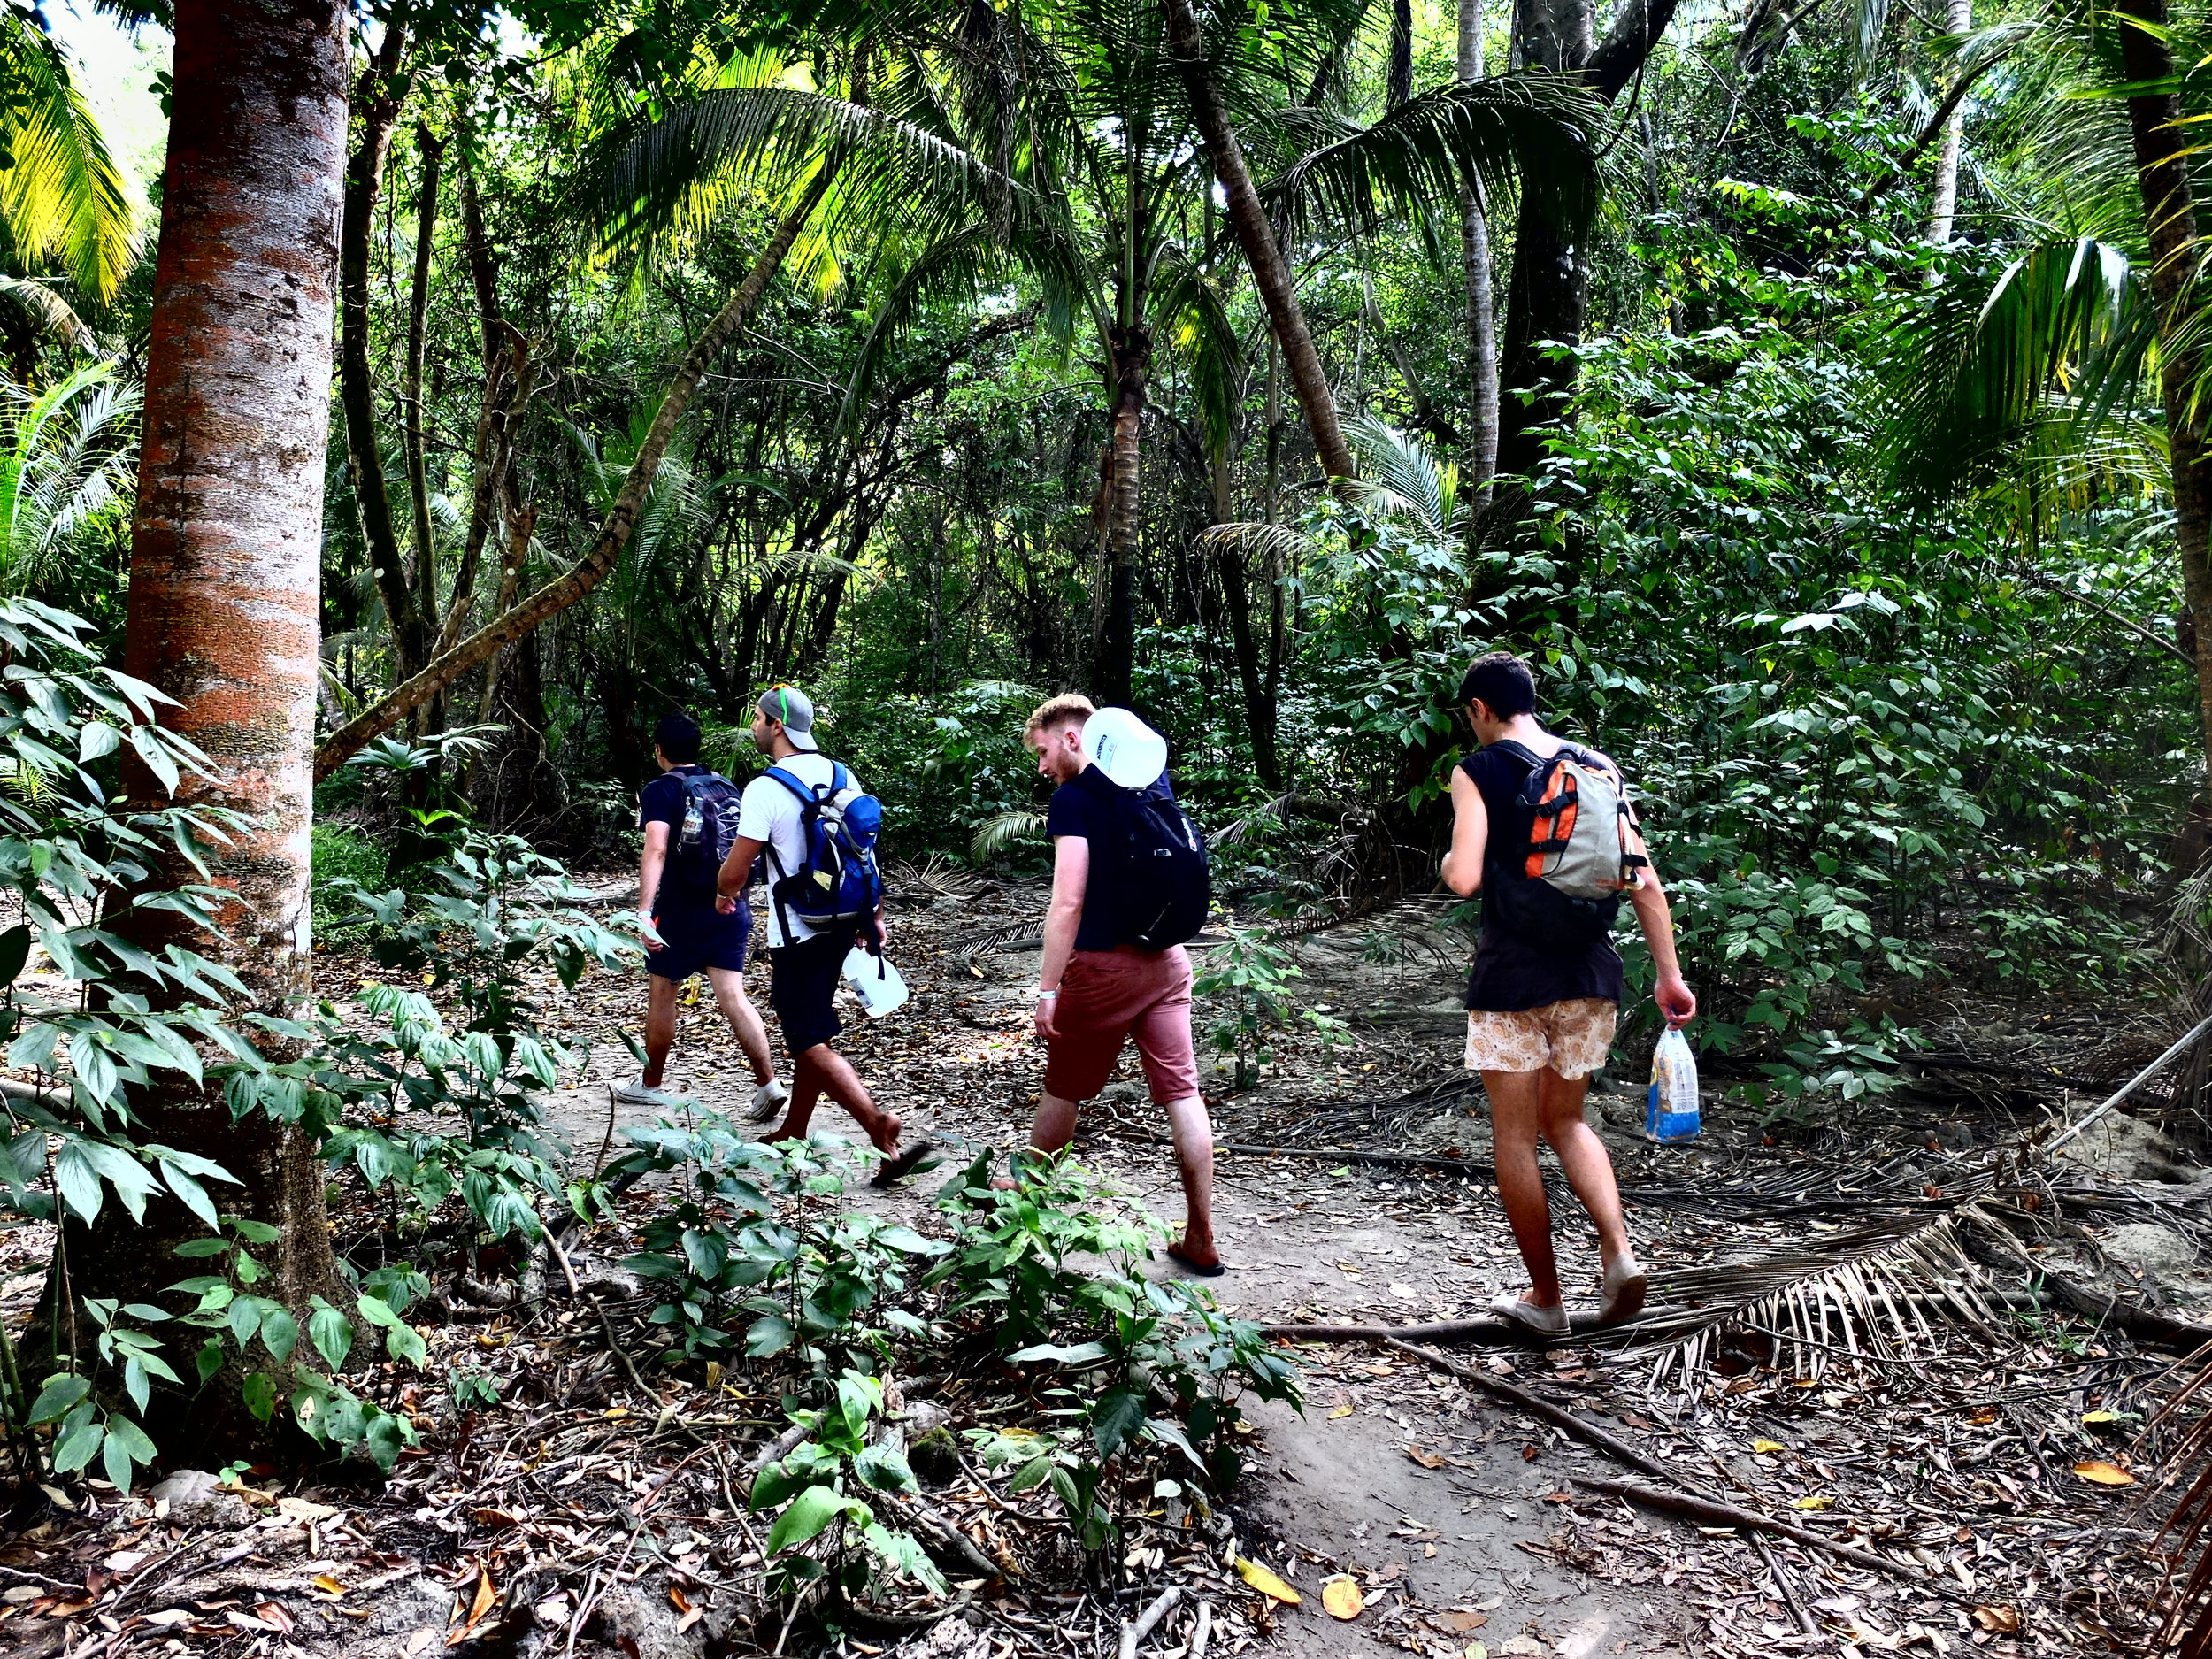 The crew trekking through the jungle